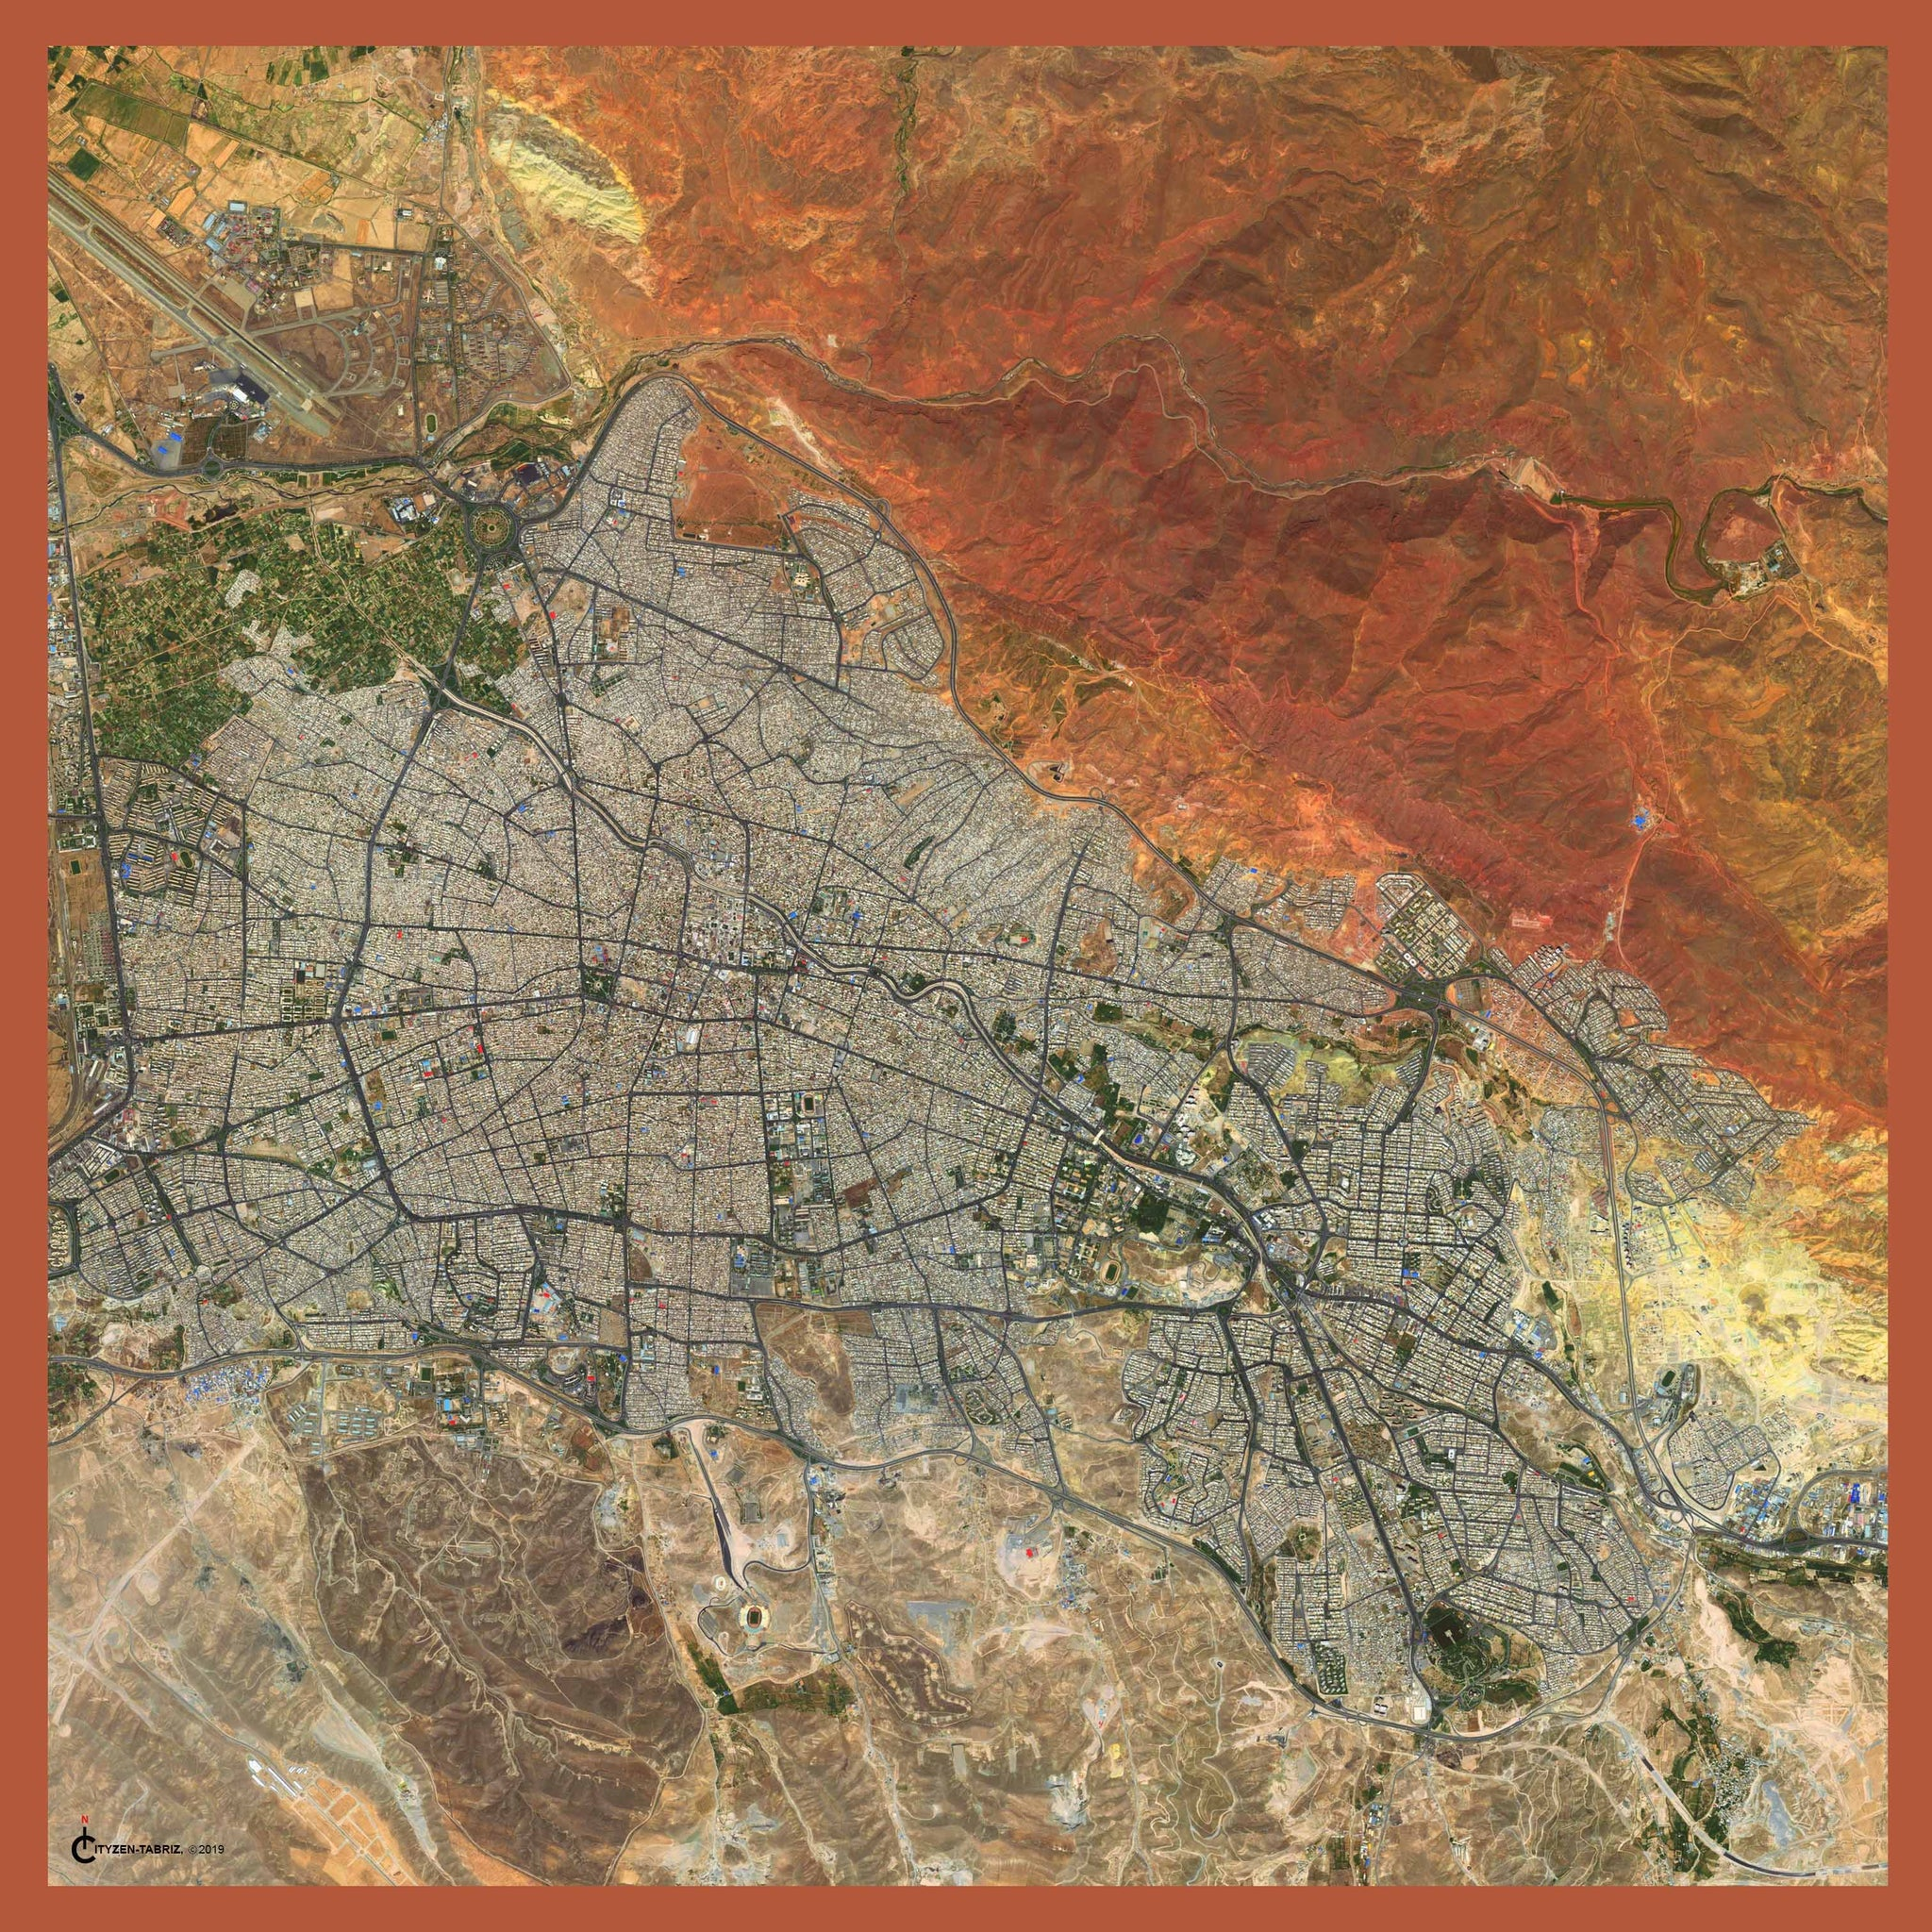 Tabriz, Azarbaijan print modal/cashmere scarf showing aerial view of the city and surrounding mountains